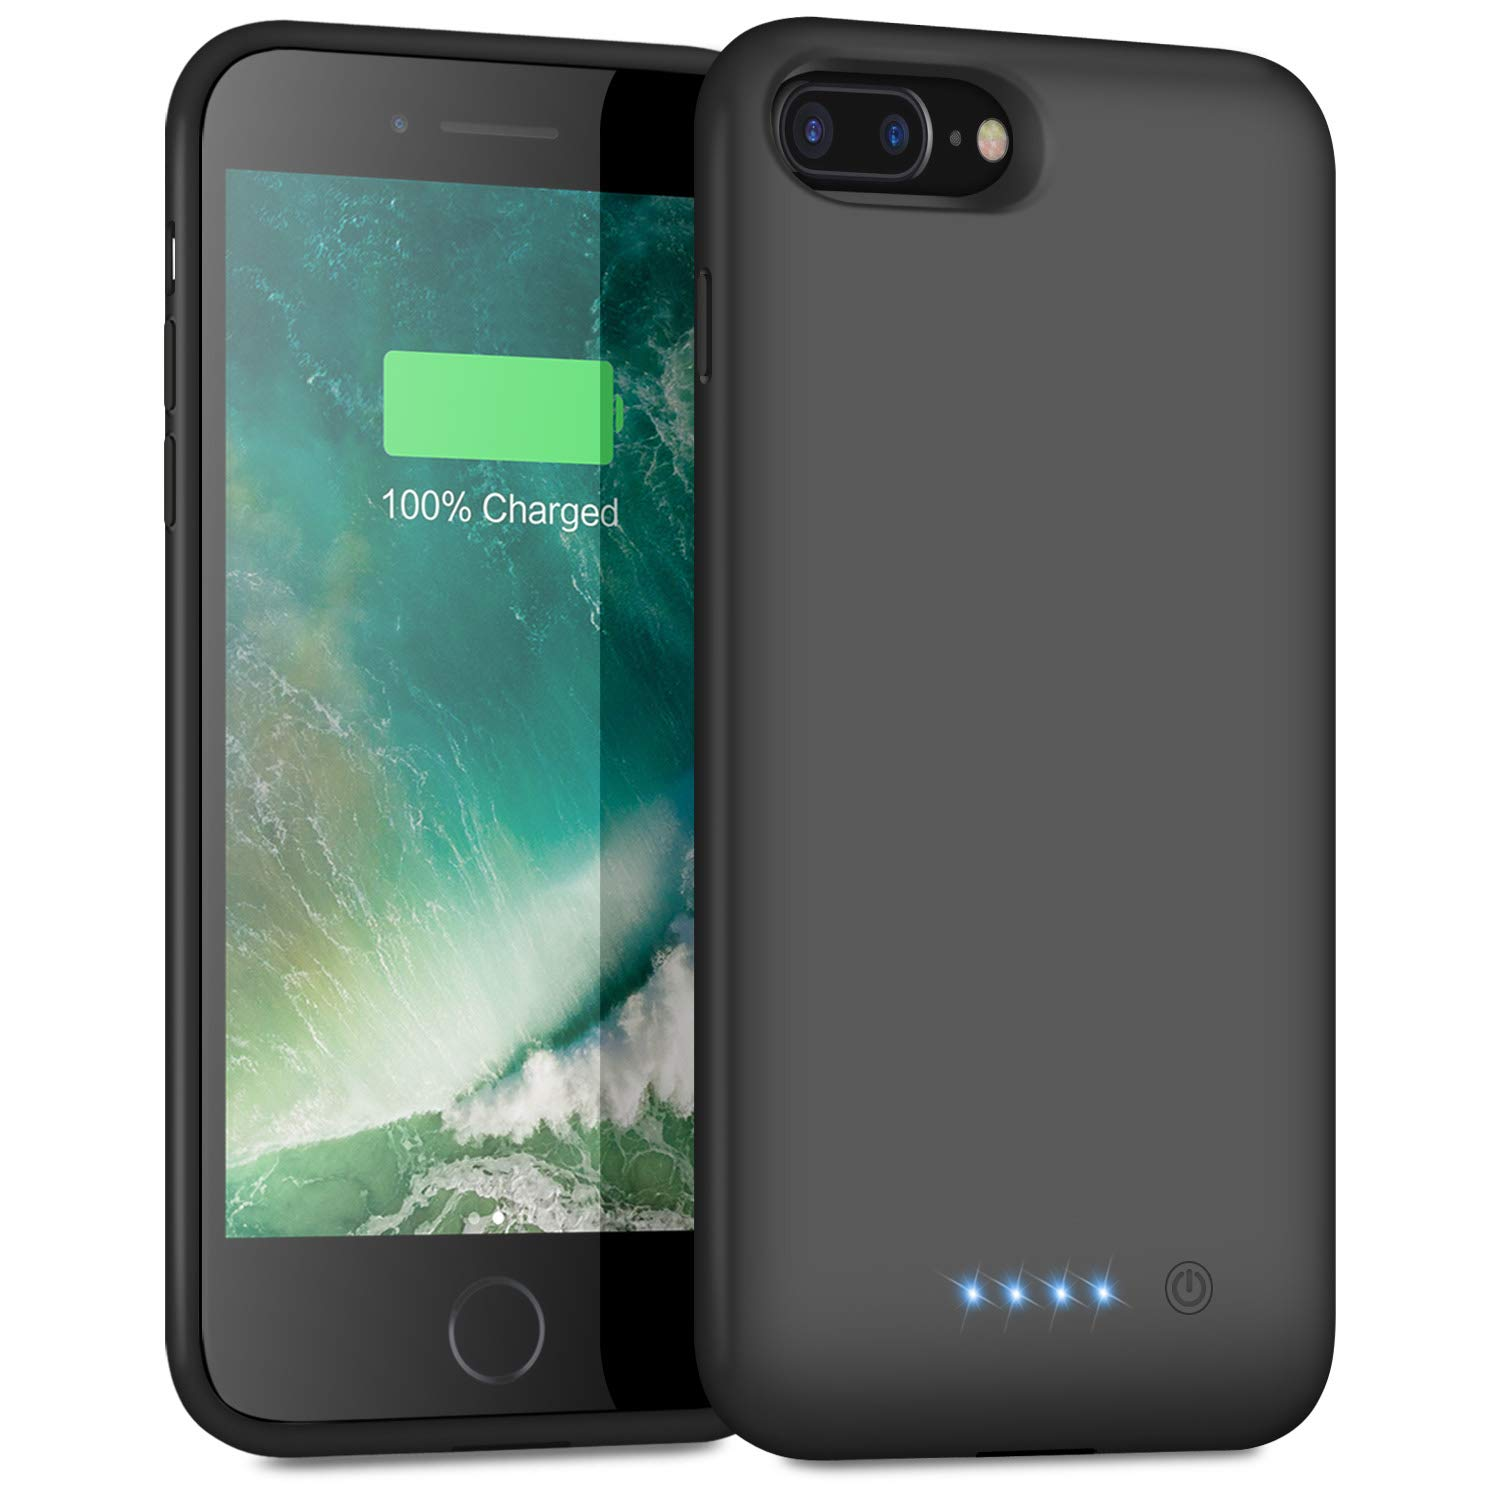 Battery Case for iPhone 8 Plus/7 Plus 8500mAh, iPosible Upgraded Portable Rechargeable Charging Case Extended Battery Pack for Apple iPhone 7 Plus/8 Plus [5.5 inch] Protective Backup Cover Case-Black